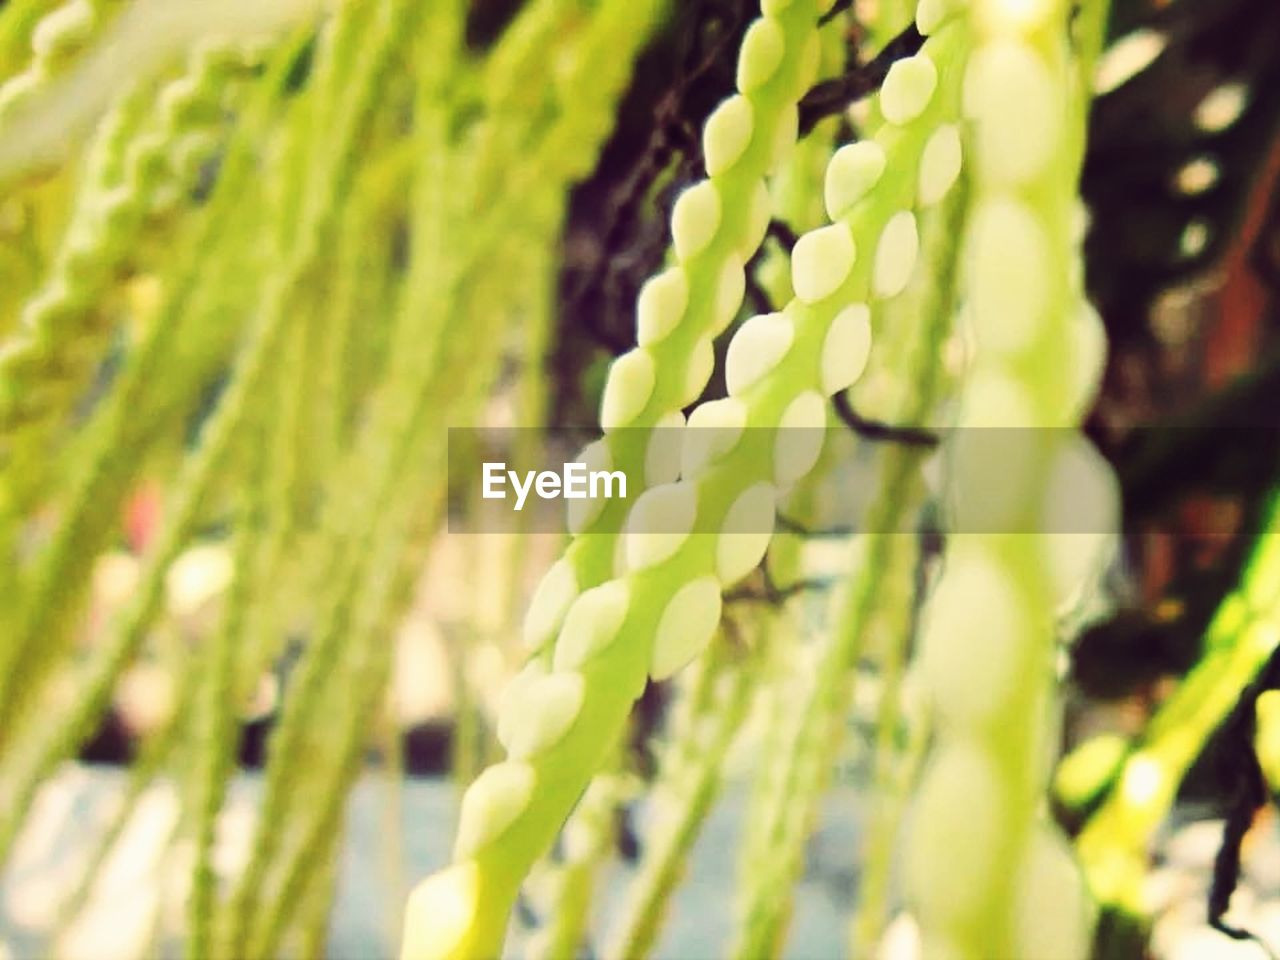 green color, growth, plant, nature, no people, day, outdoors, close-up, fern, frond, fragility, beauty in nature, freshness